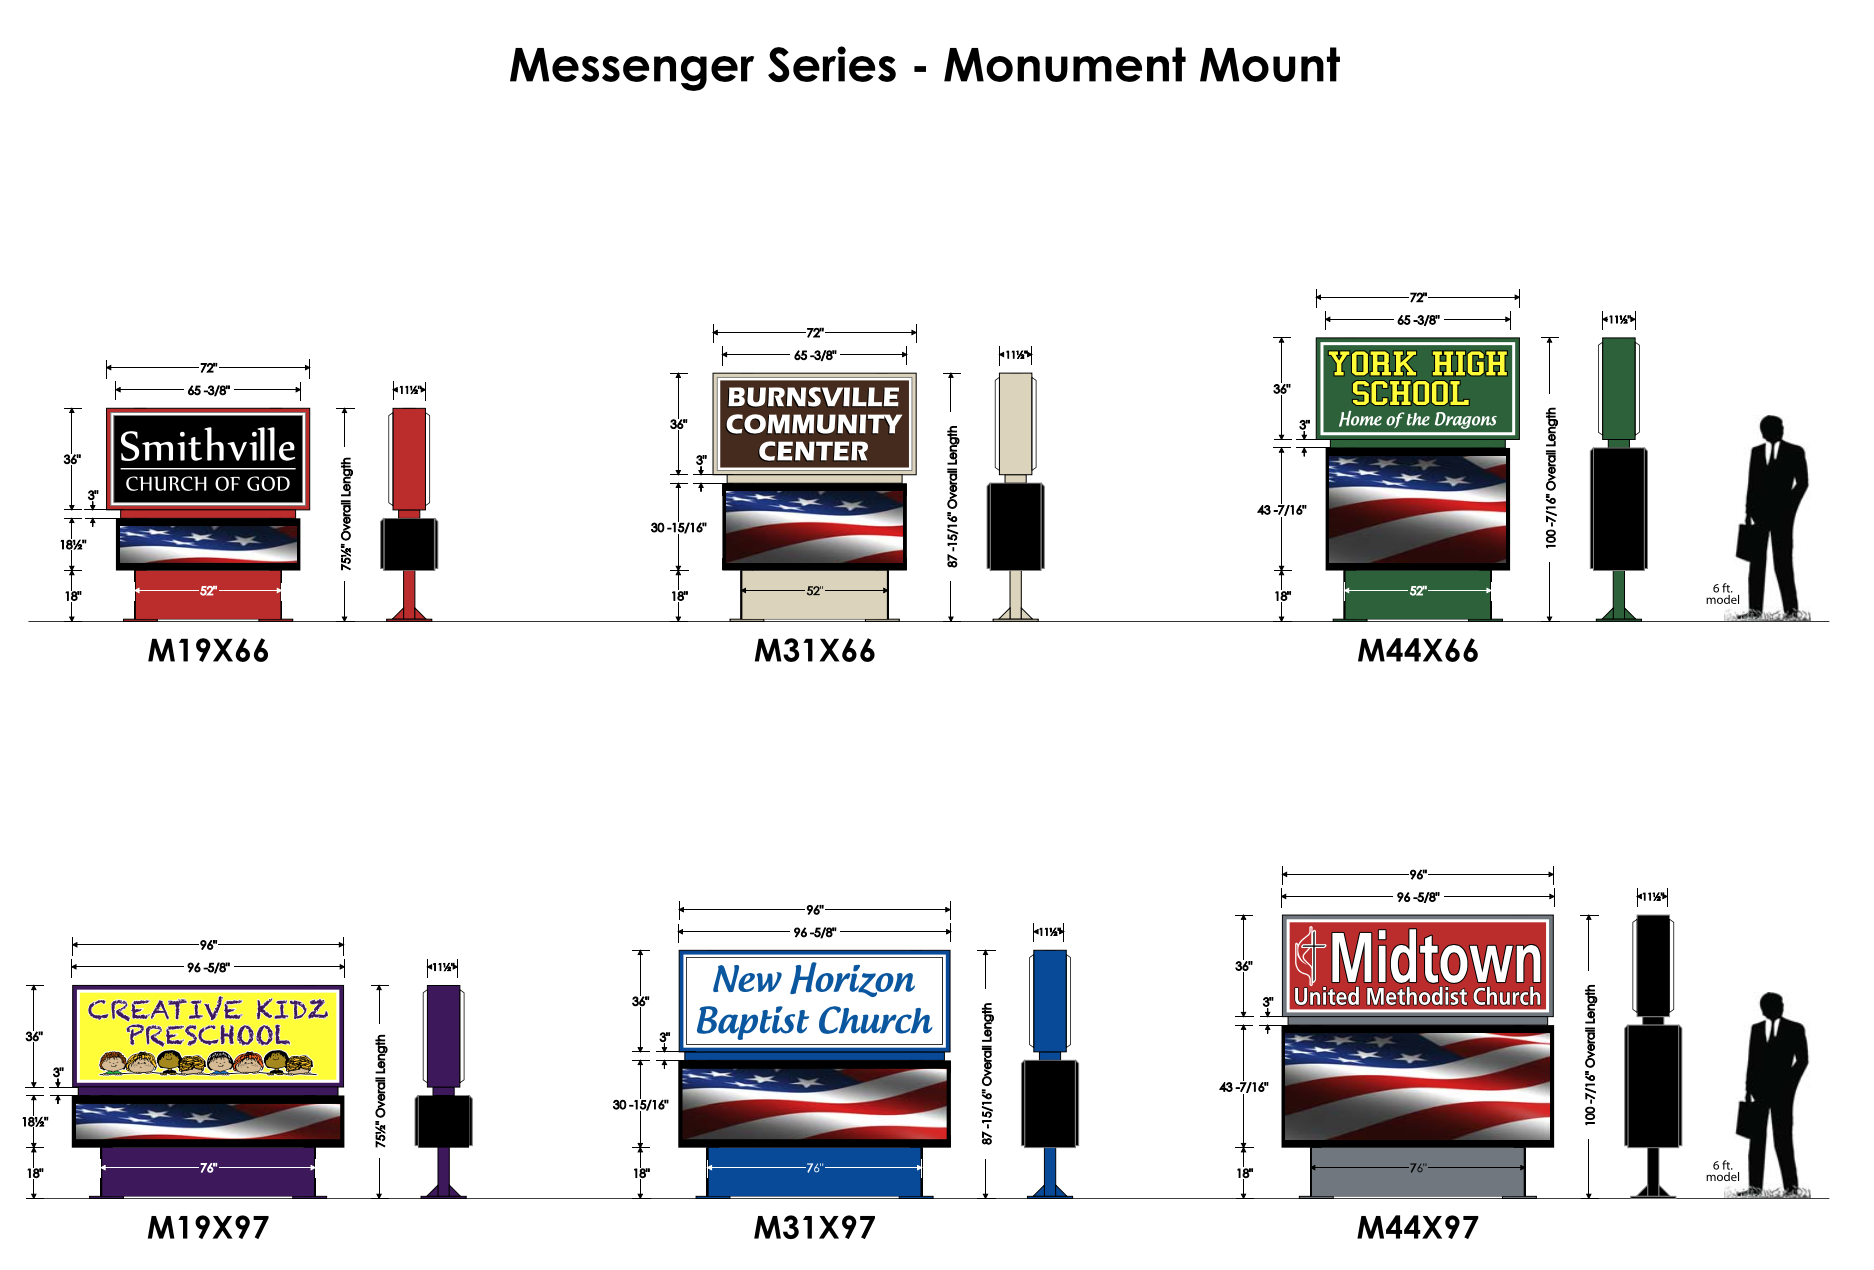 messenger-series-monument-mount.png